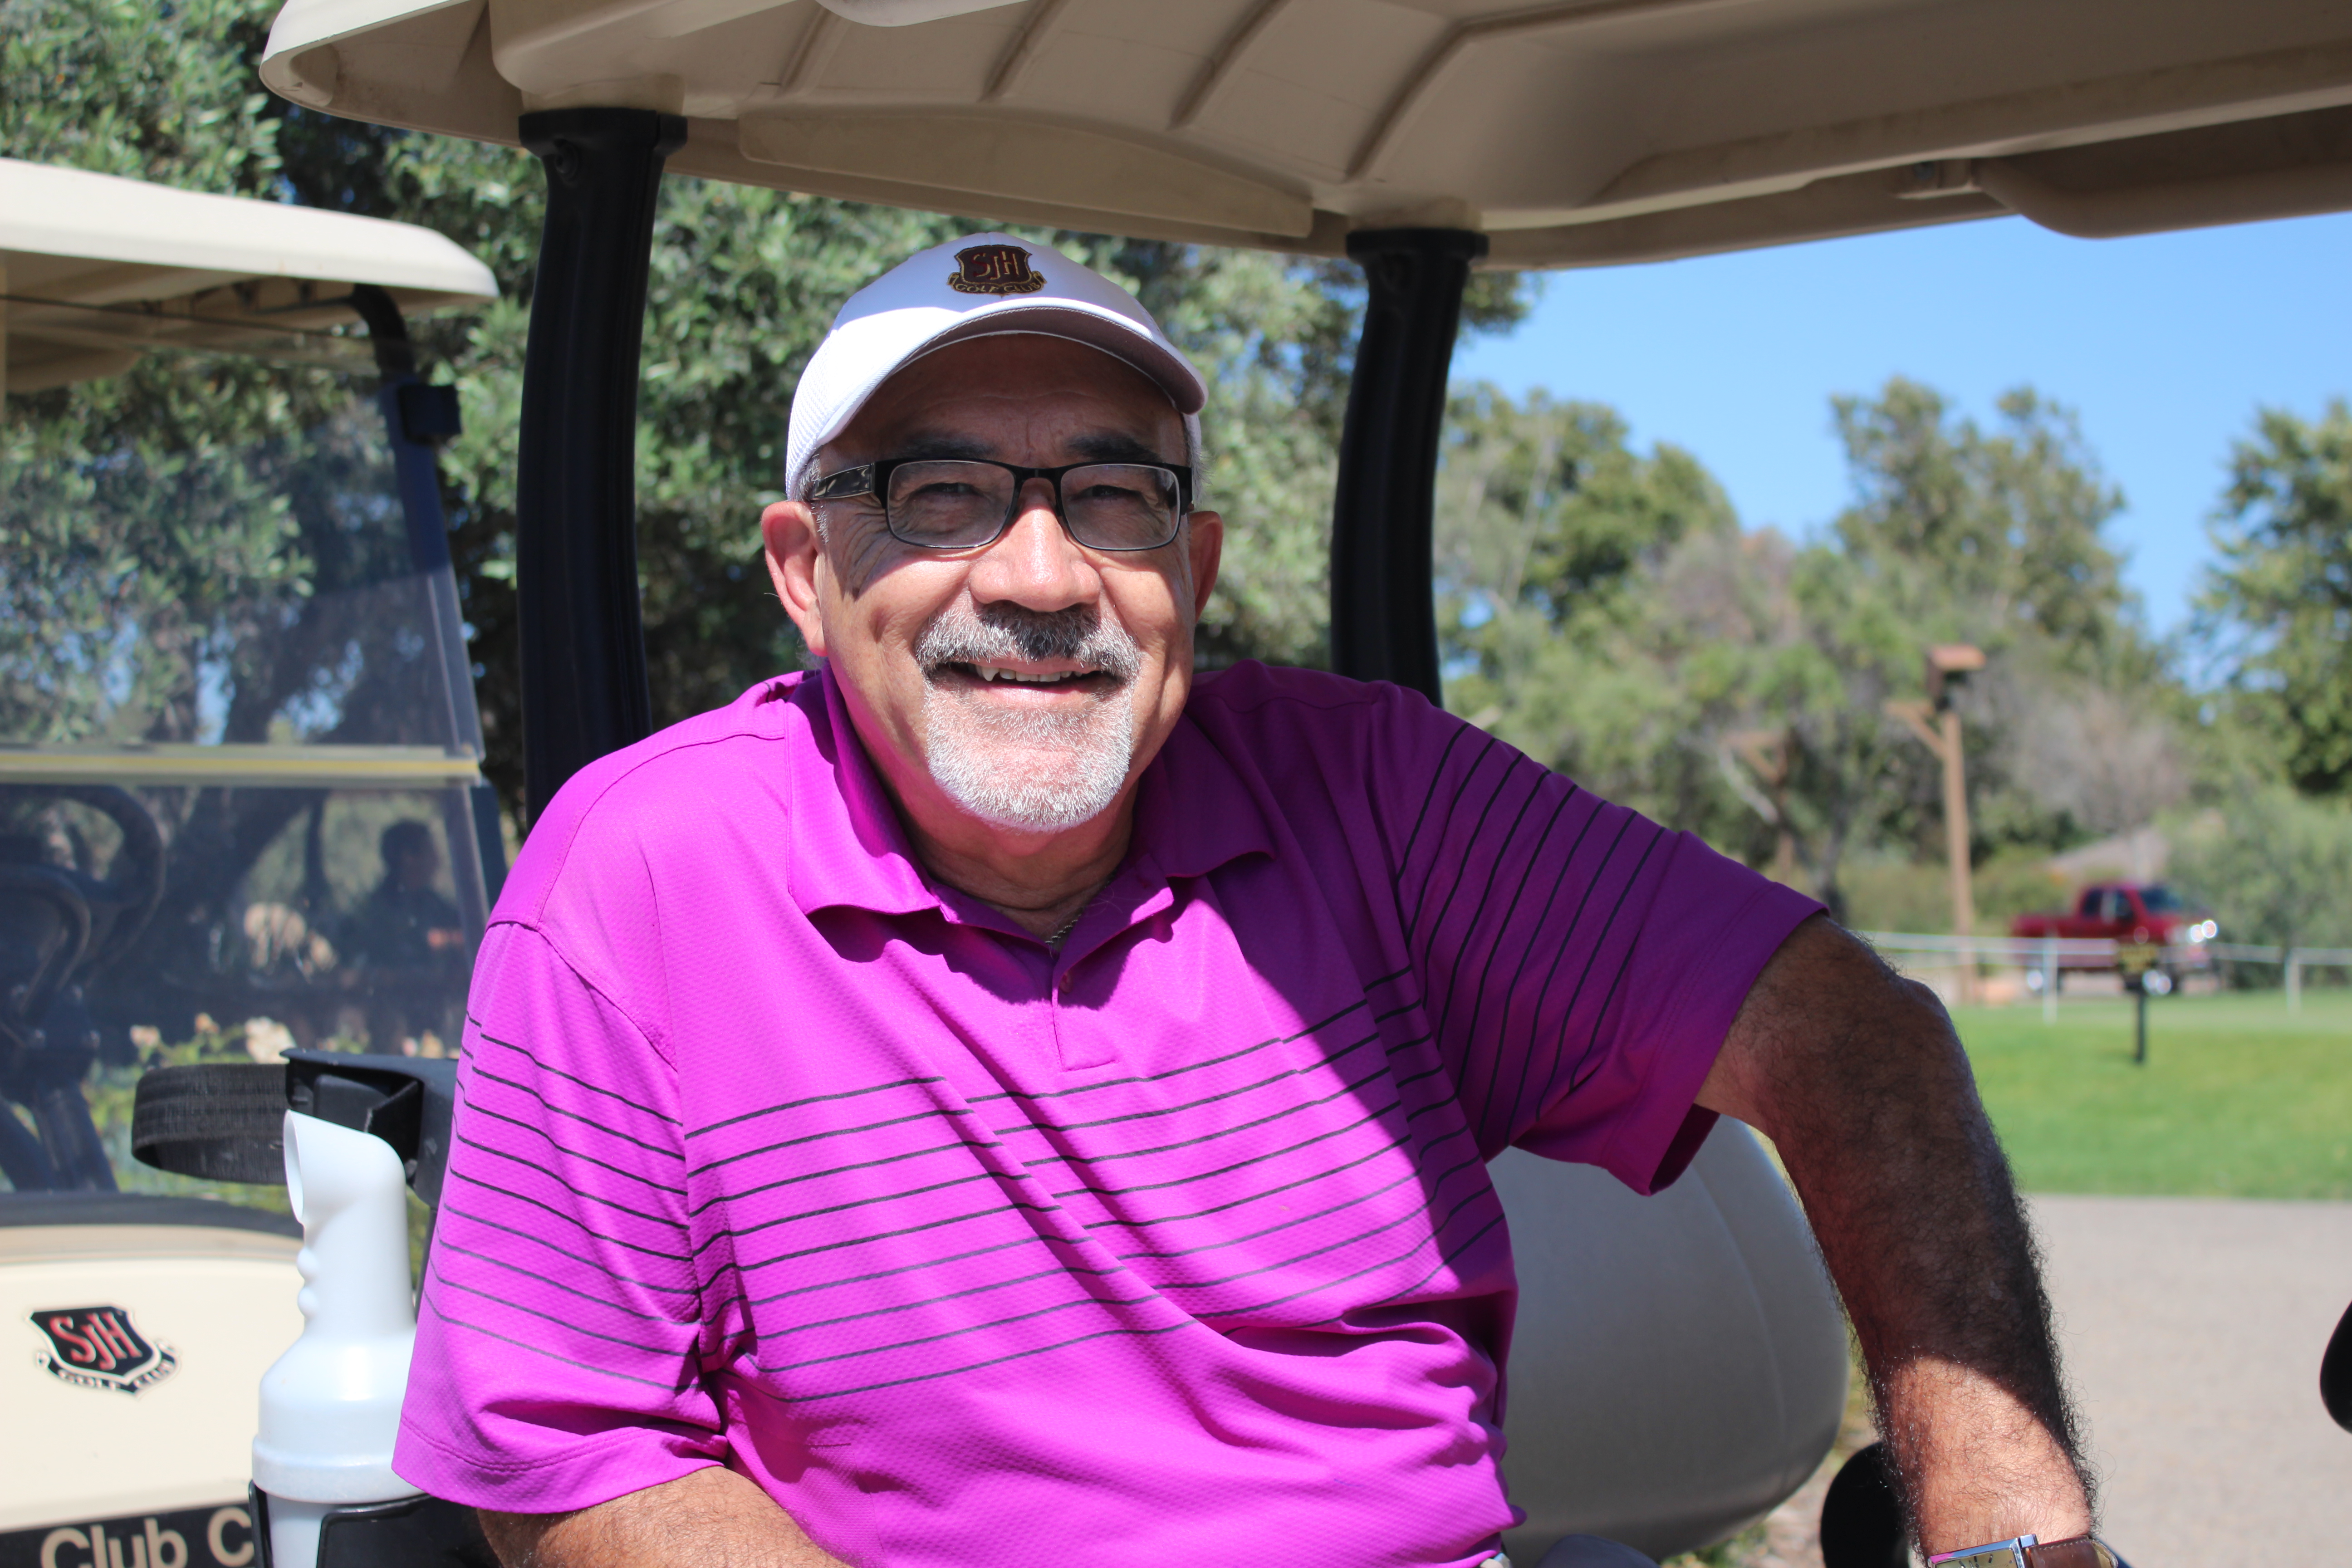 Ray Ricardo has been working at San Juan Hills Golf Club for more than 22 years. He's served as the club pro since 1995. Photo by Steve Breazeale